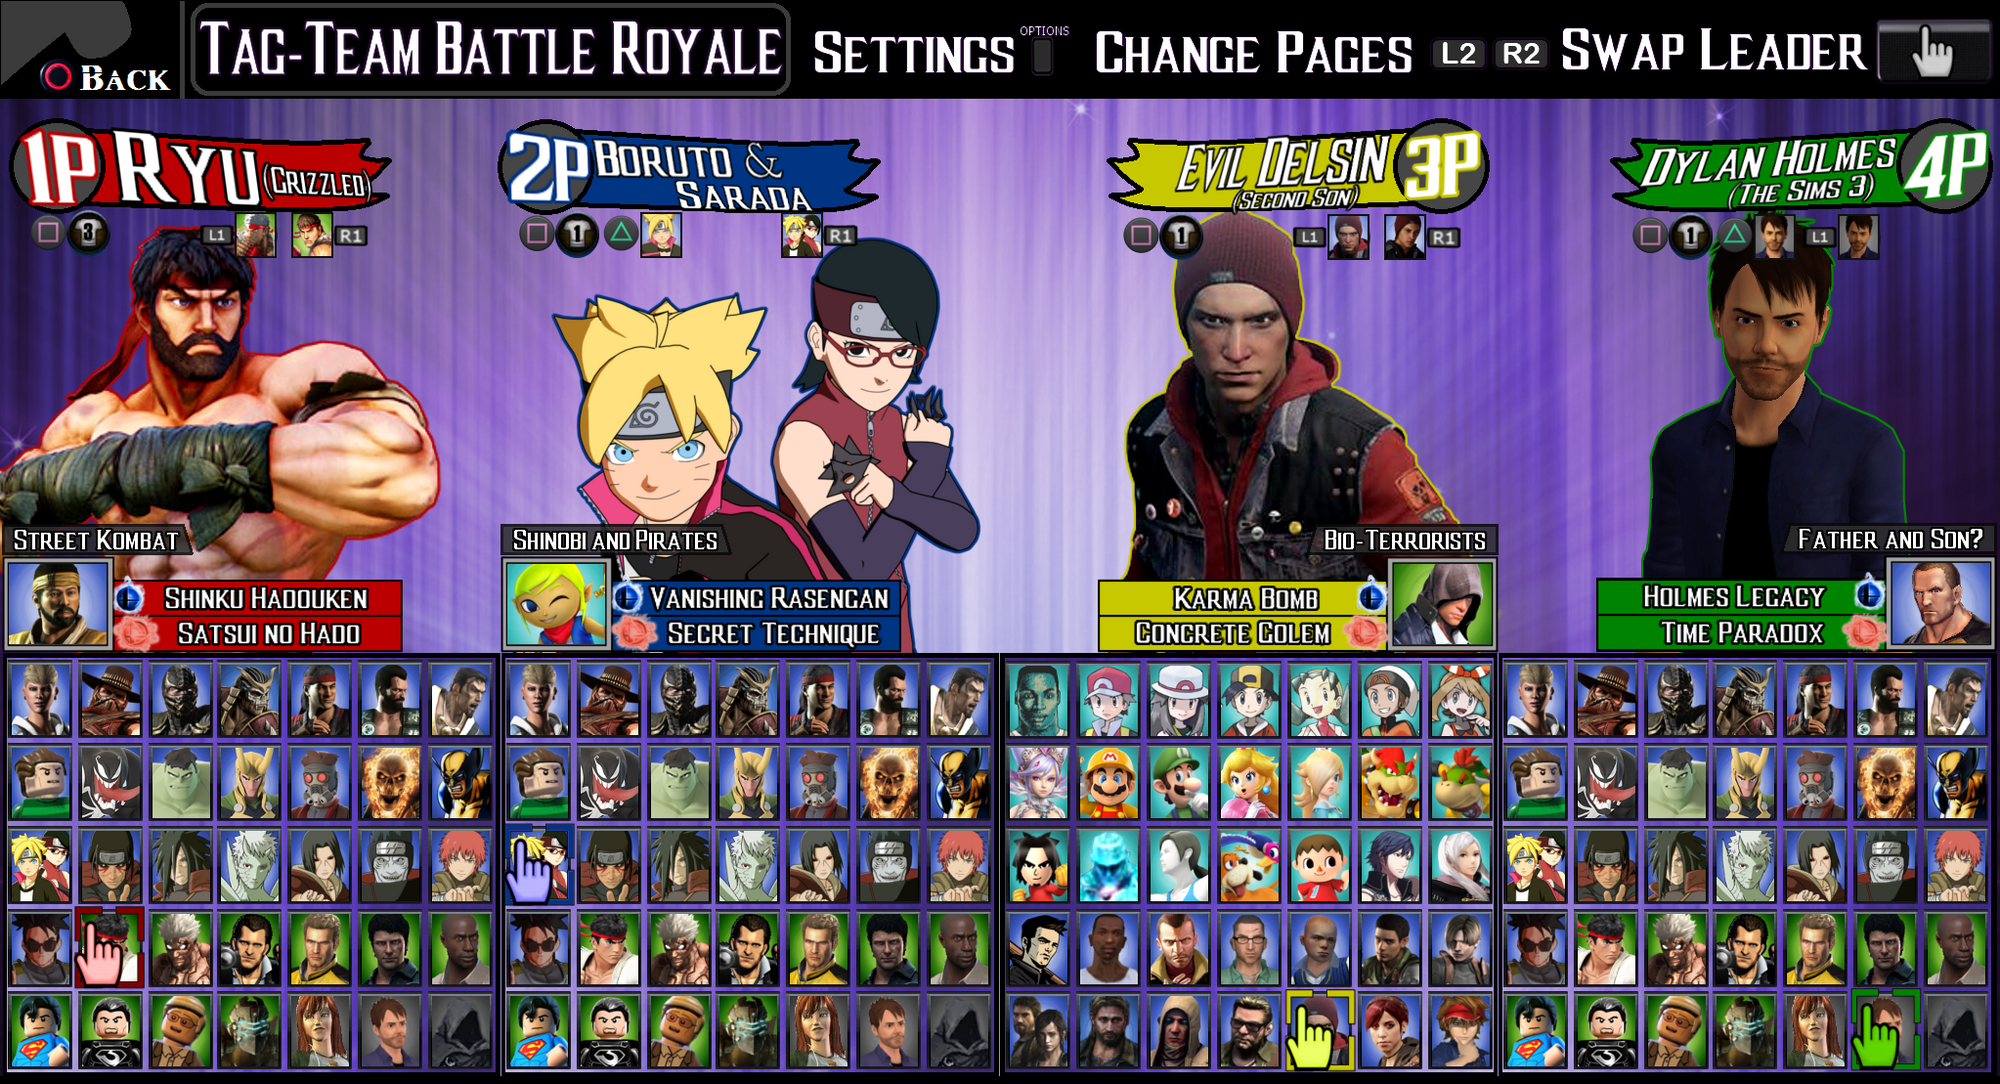 Playstation All Stars Wiki: User Blog:LeeHatake93/The Crossver Game: Character Roster